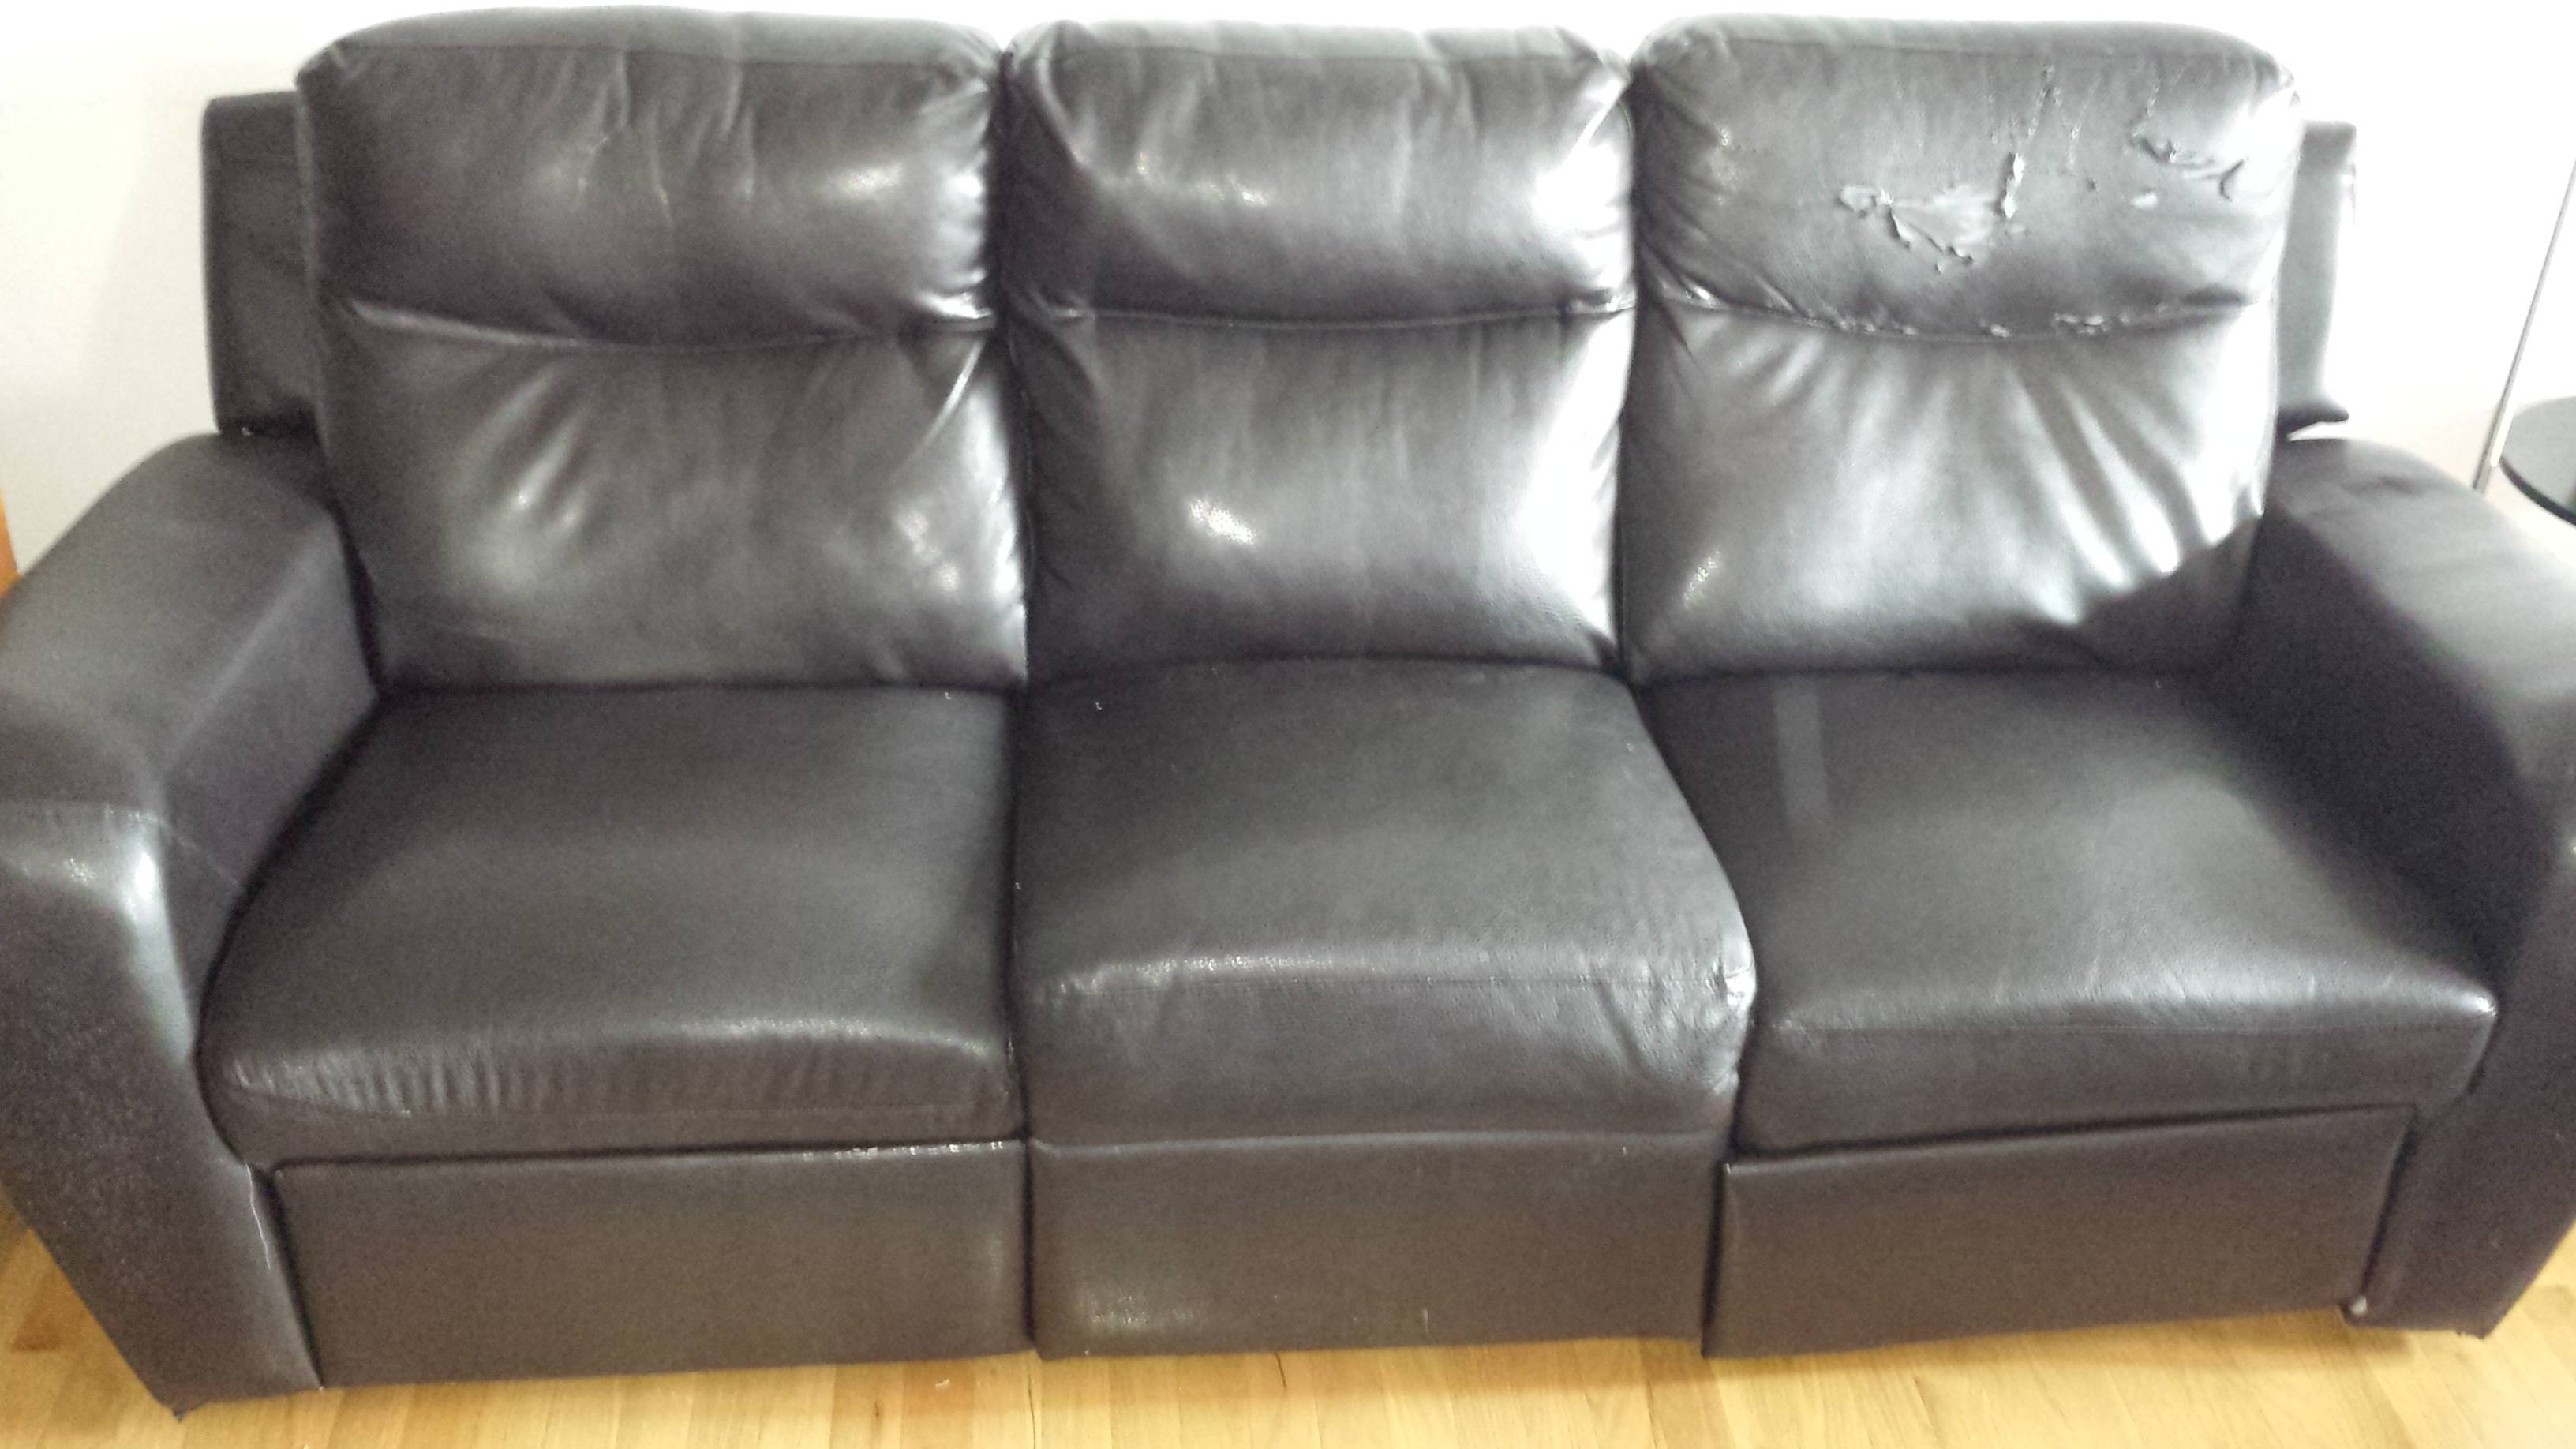 My Bonded Leather Couch (Bought In 2011) From The Brick Is Falling intended for The Brick Leather Sofa (Image 17 of 30)